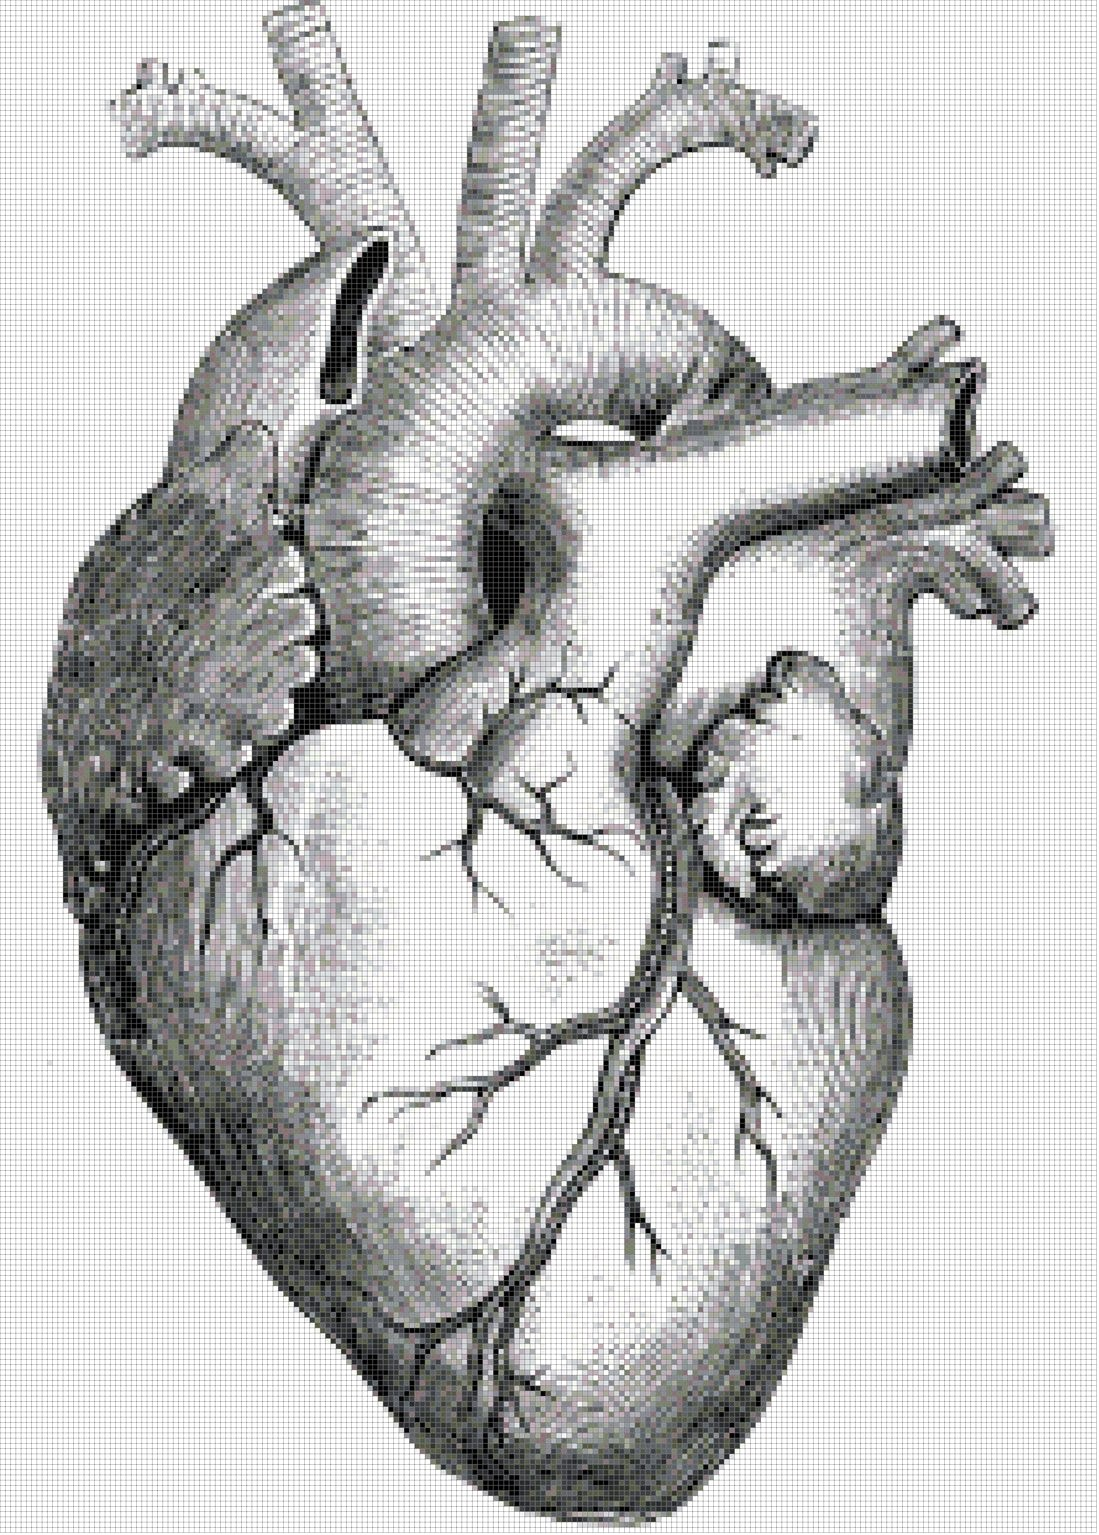 Heart with Ventricles Cross-Stitch Pattern https://www.etsy.com/listing/118012062/heart-with-ventricles-illustration-pdf?ref=shop_home_active_18